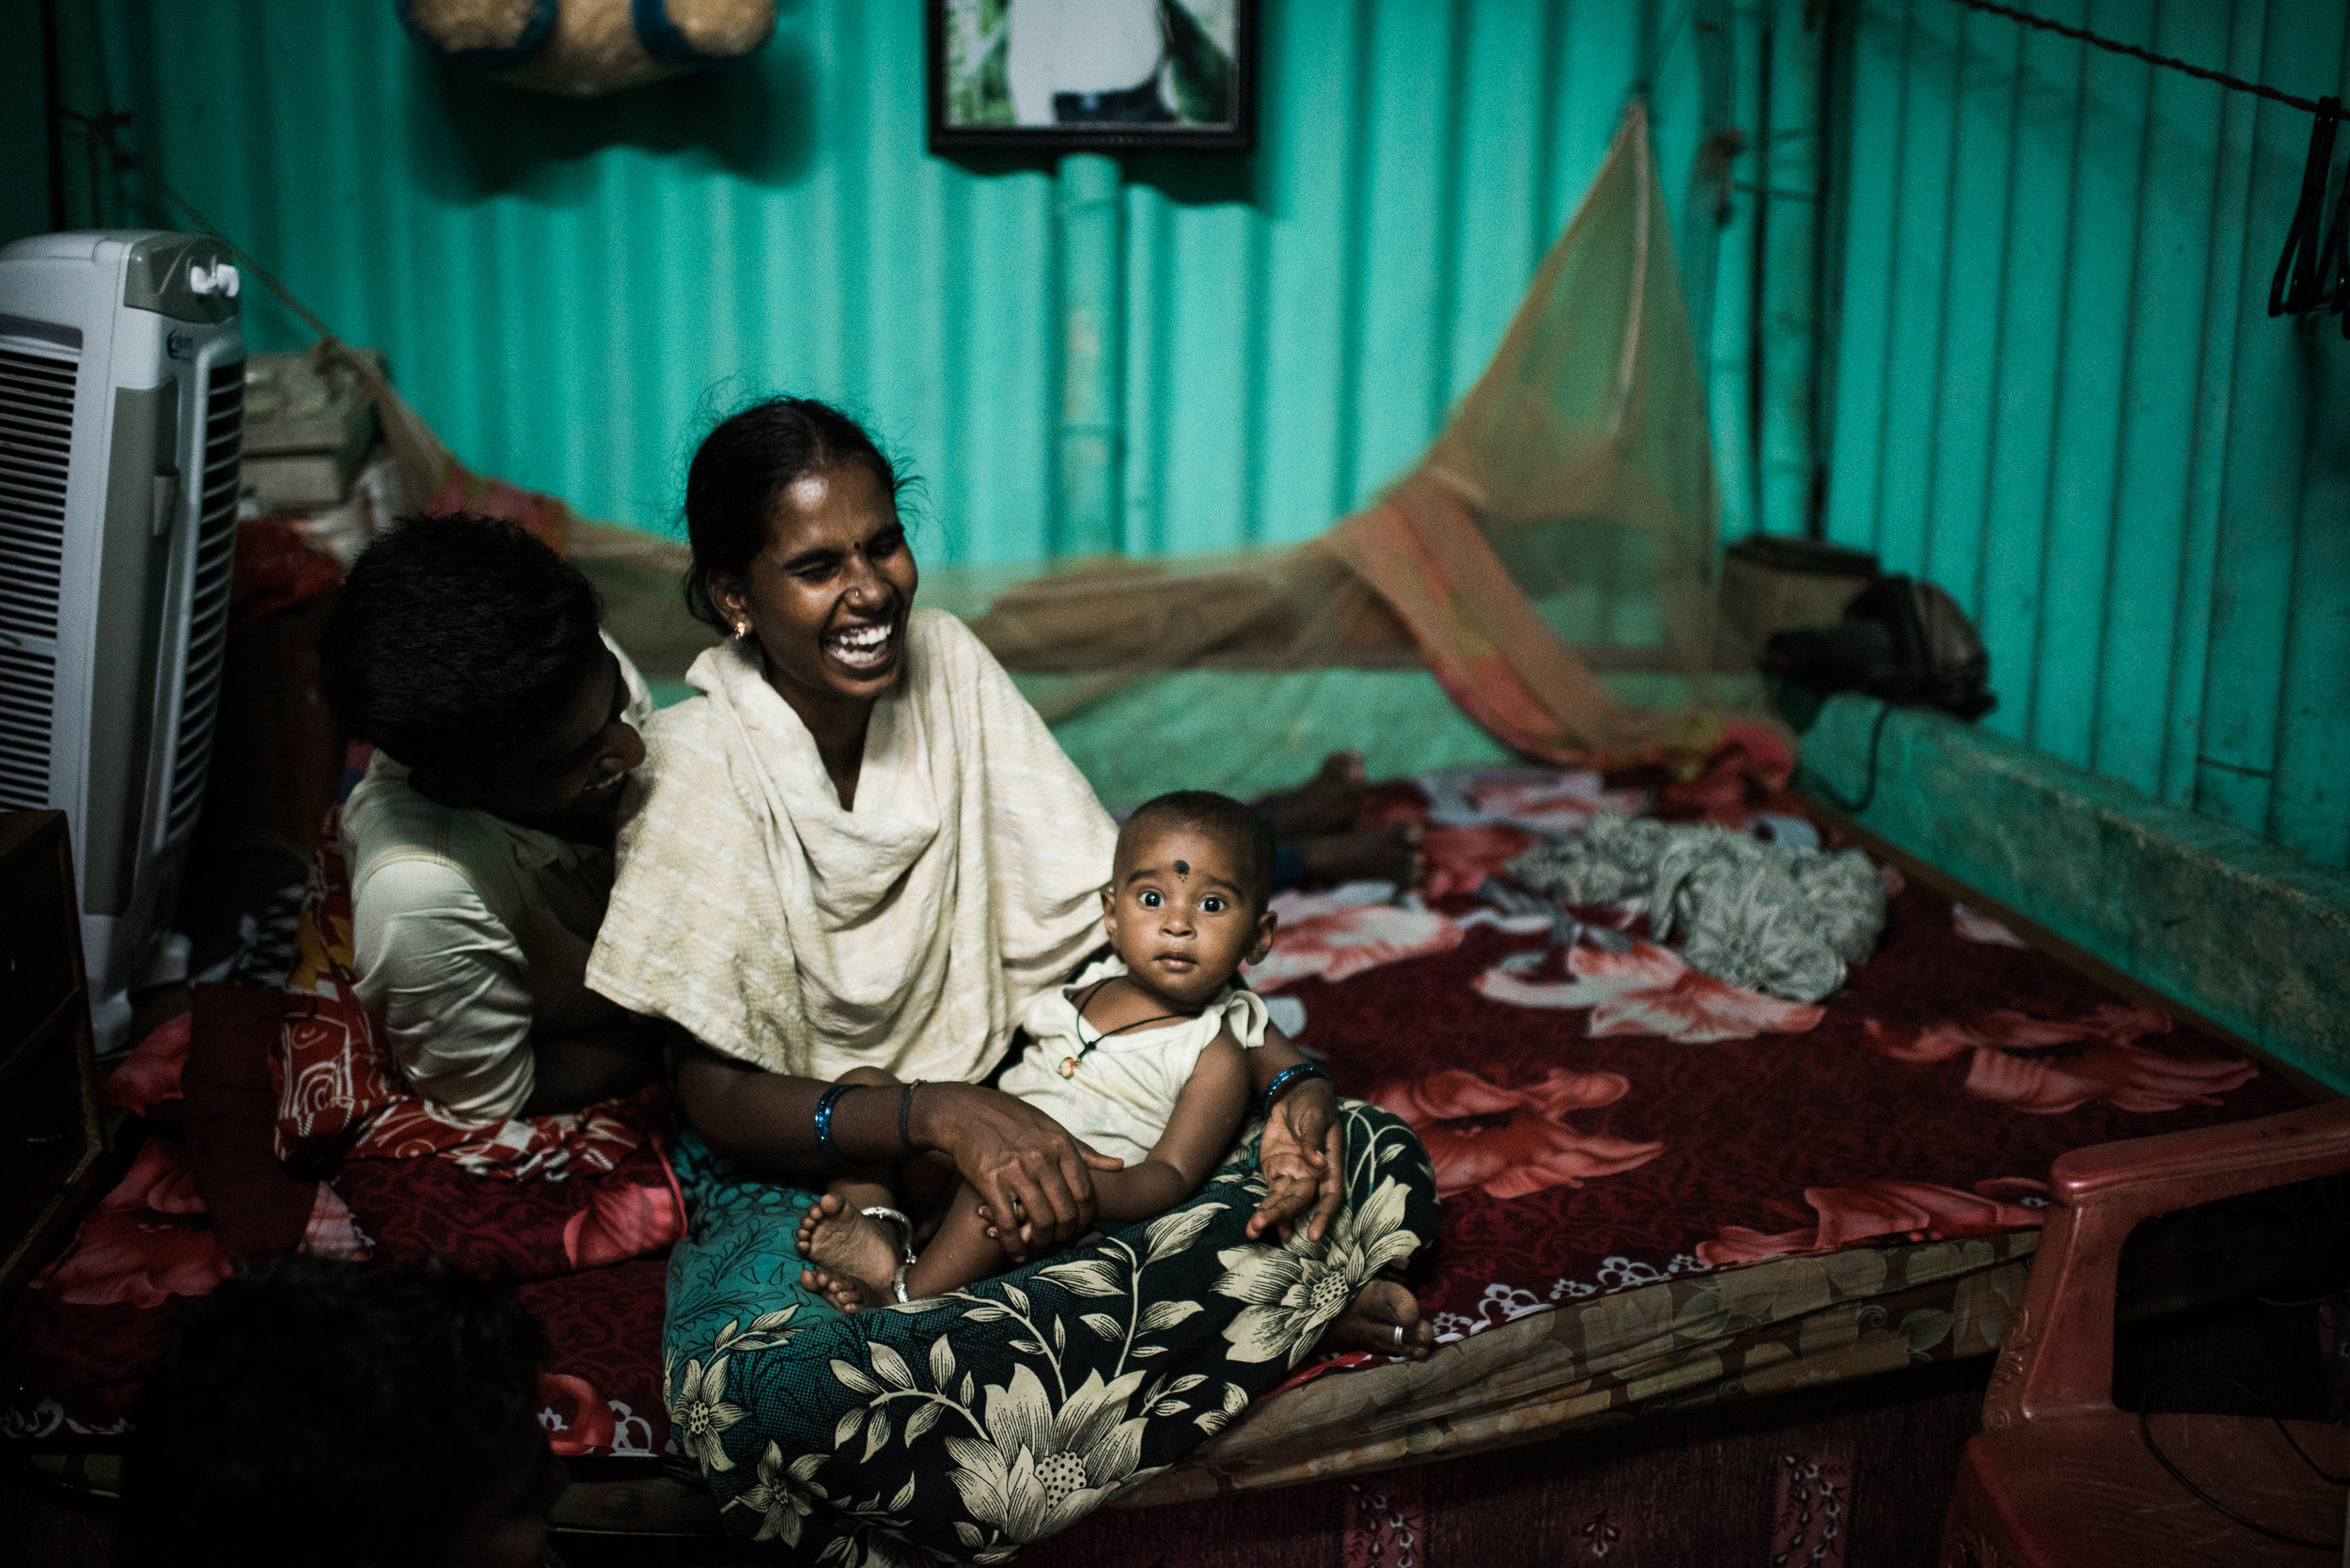 Chennai_India_NatGeo_Woman_Photographer_Humanitarian_021.jpg